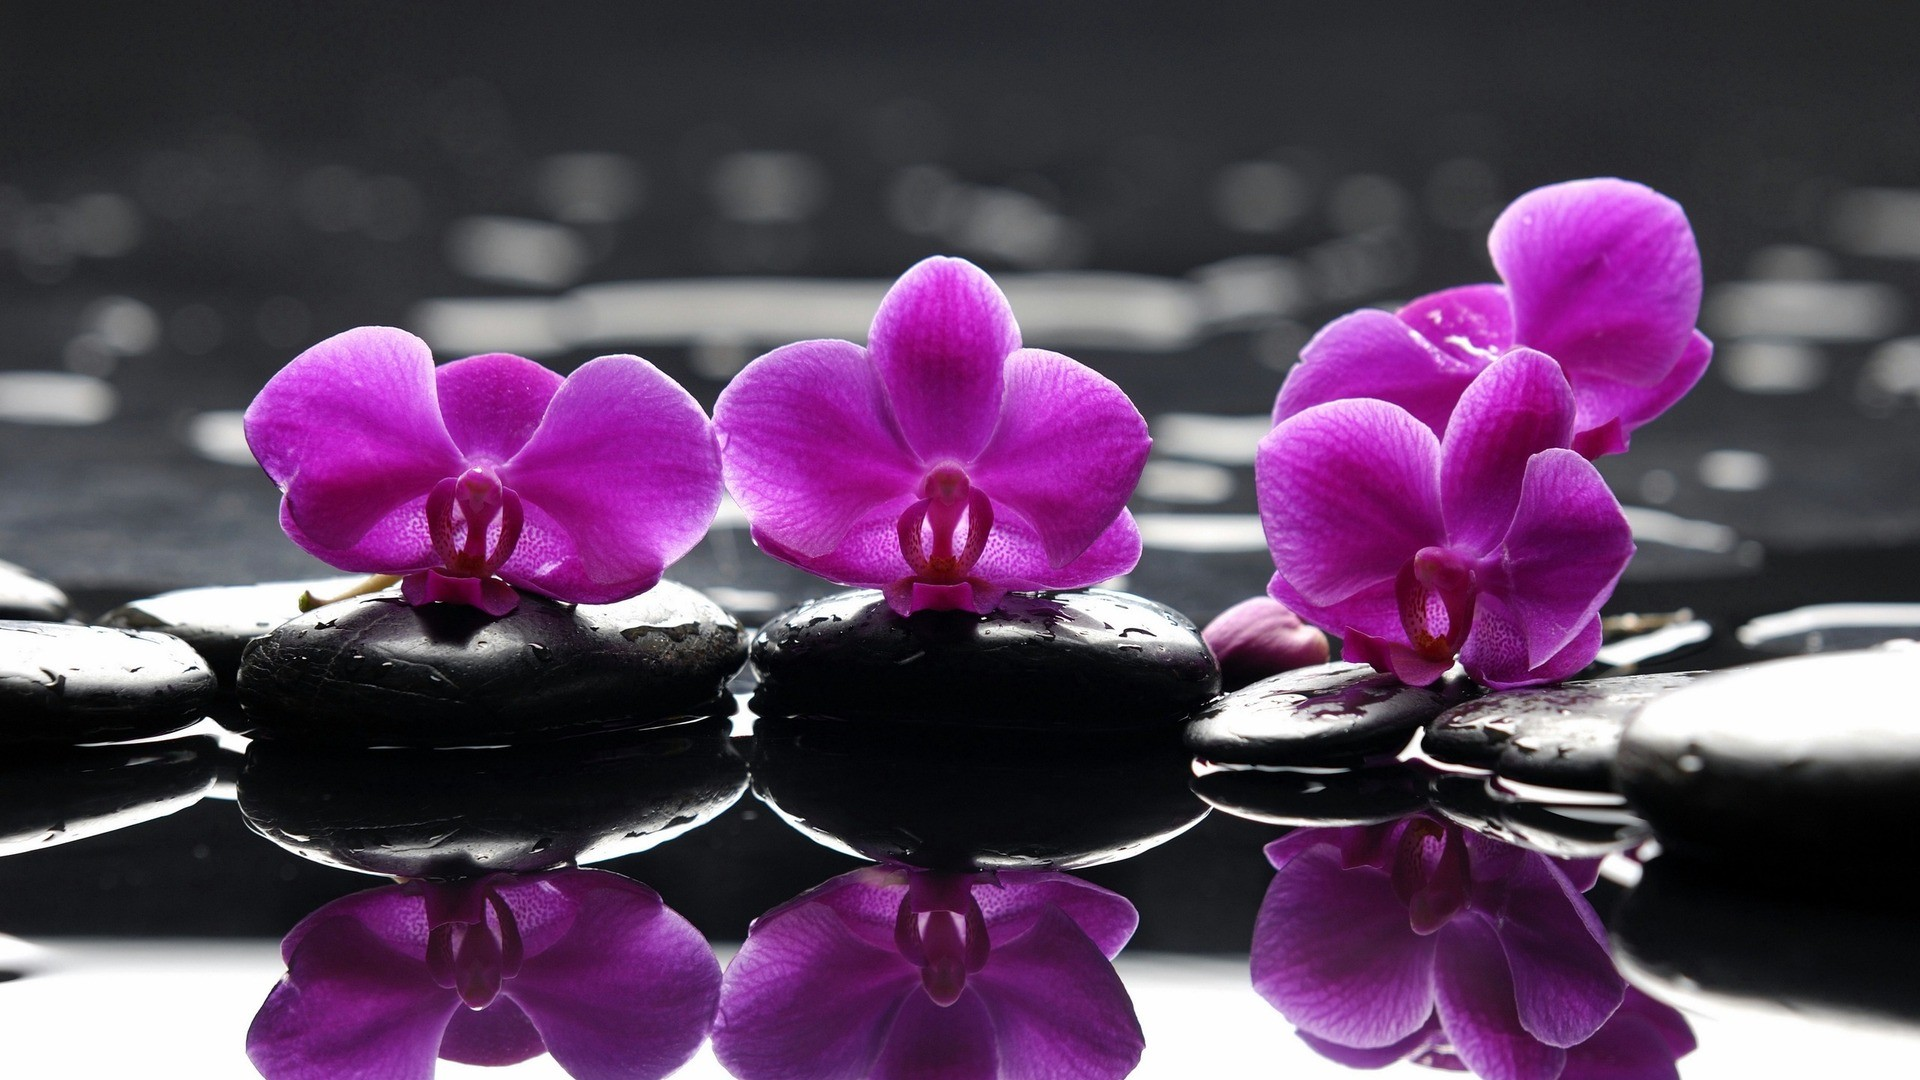 Purple Orchid Flower Wallpapers HD images